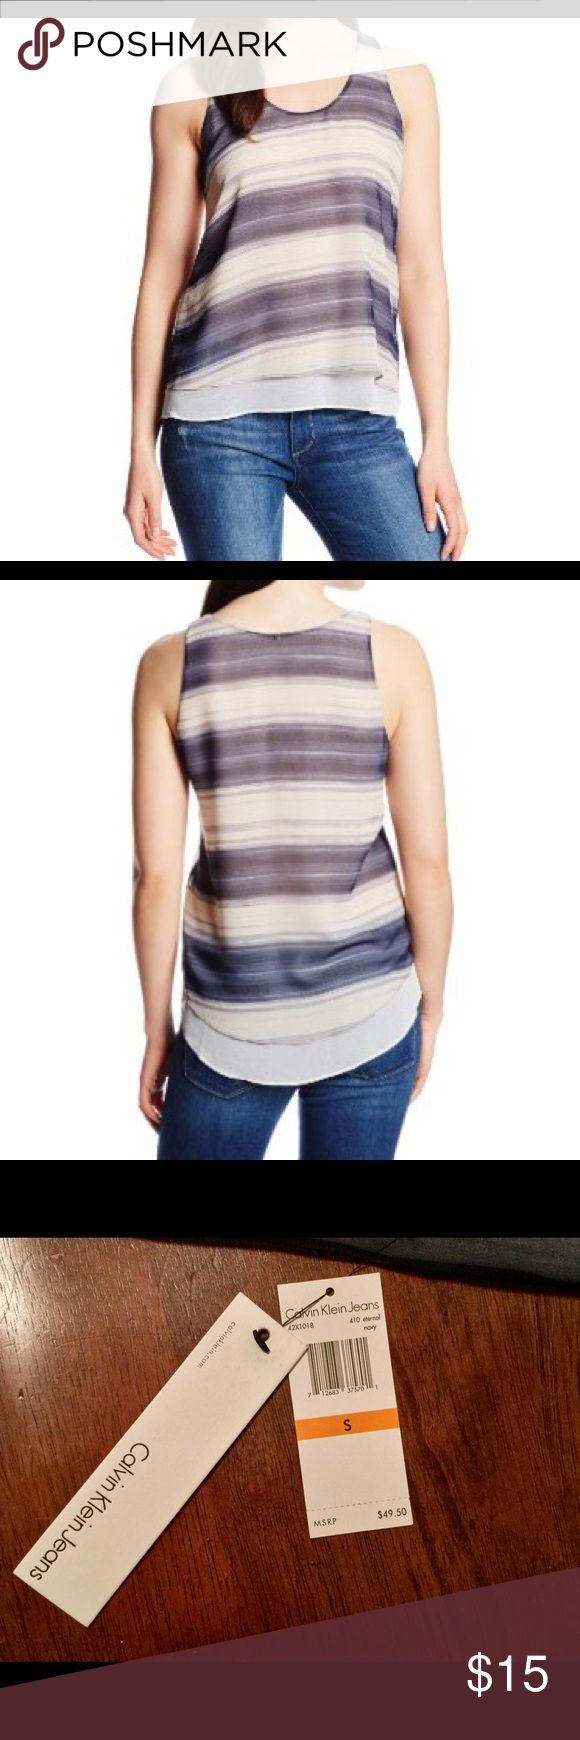 Calvin Klein Women's striped High Low Tank 🏖🌊☀️ Soft gradient blue stripes are featured throughout. Scoop neckline and sleeveless construction. Pullover styling.Relaxed silhouette.High-low hemline. Measurements:Length: 26 inches. Perfect for a hot summer day 🌊☀️⛱ Calvin Klein Jeans Tops